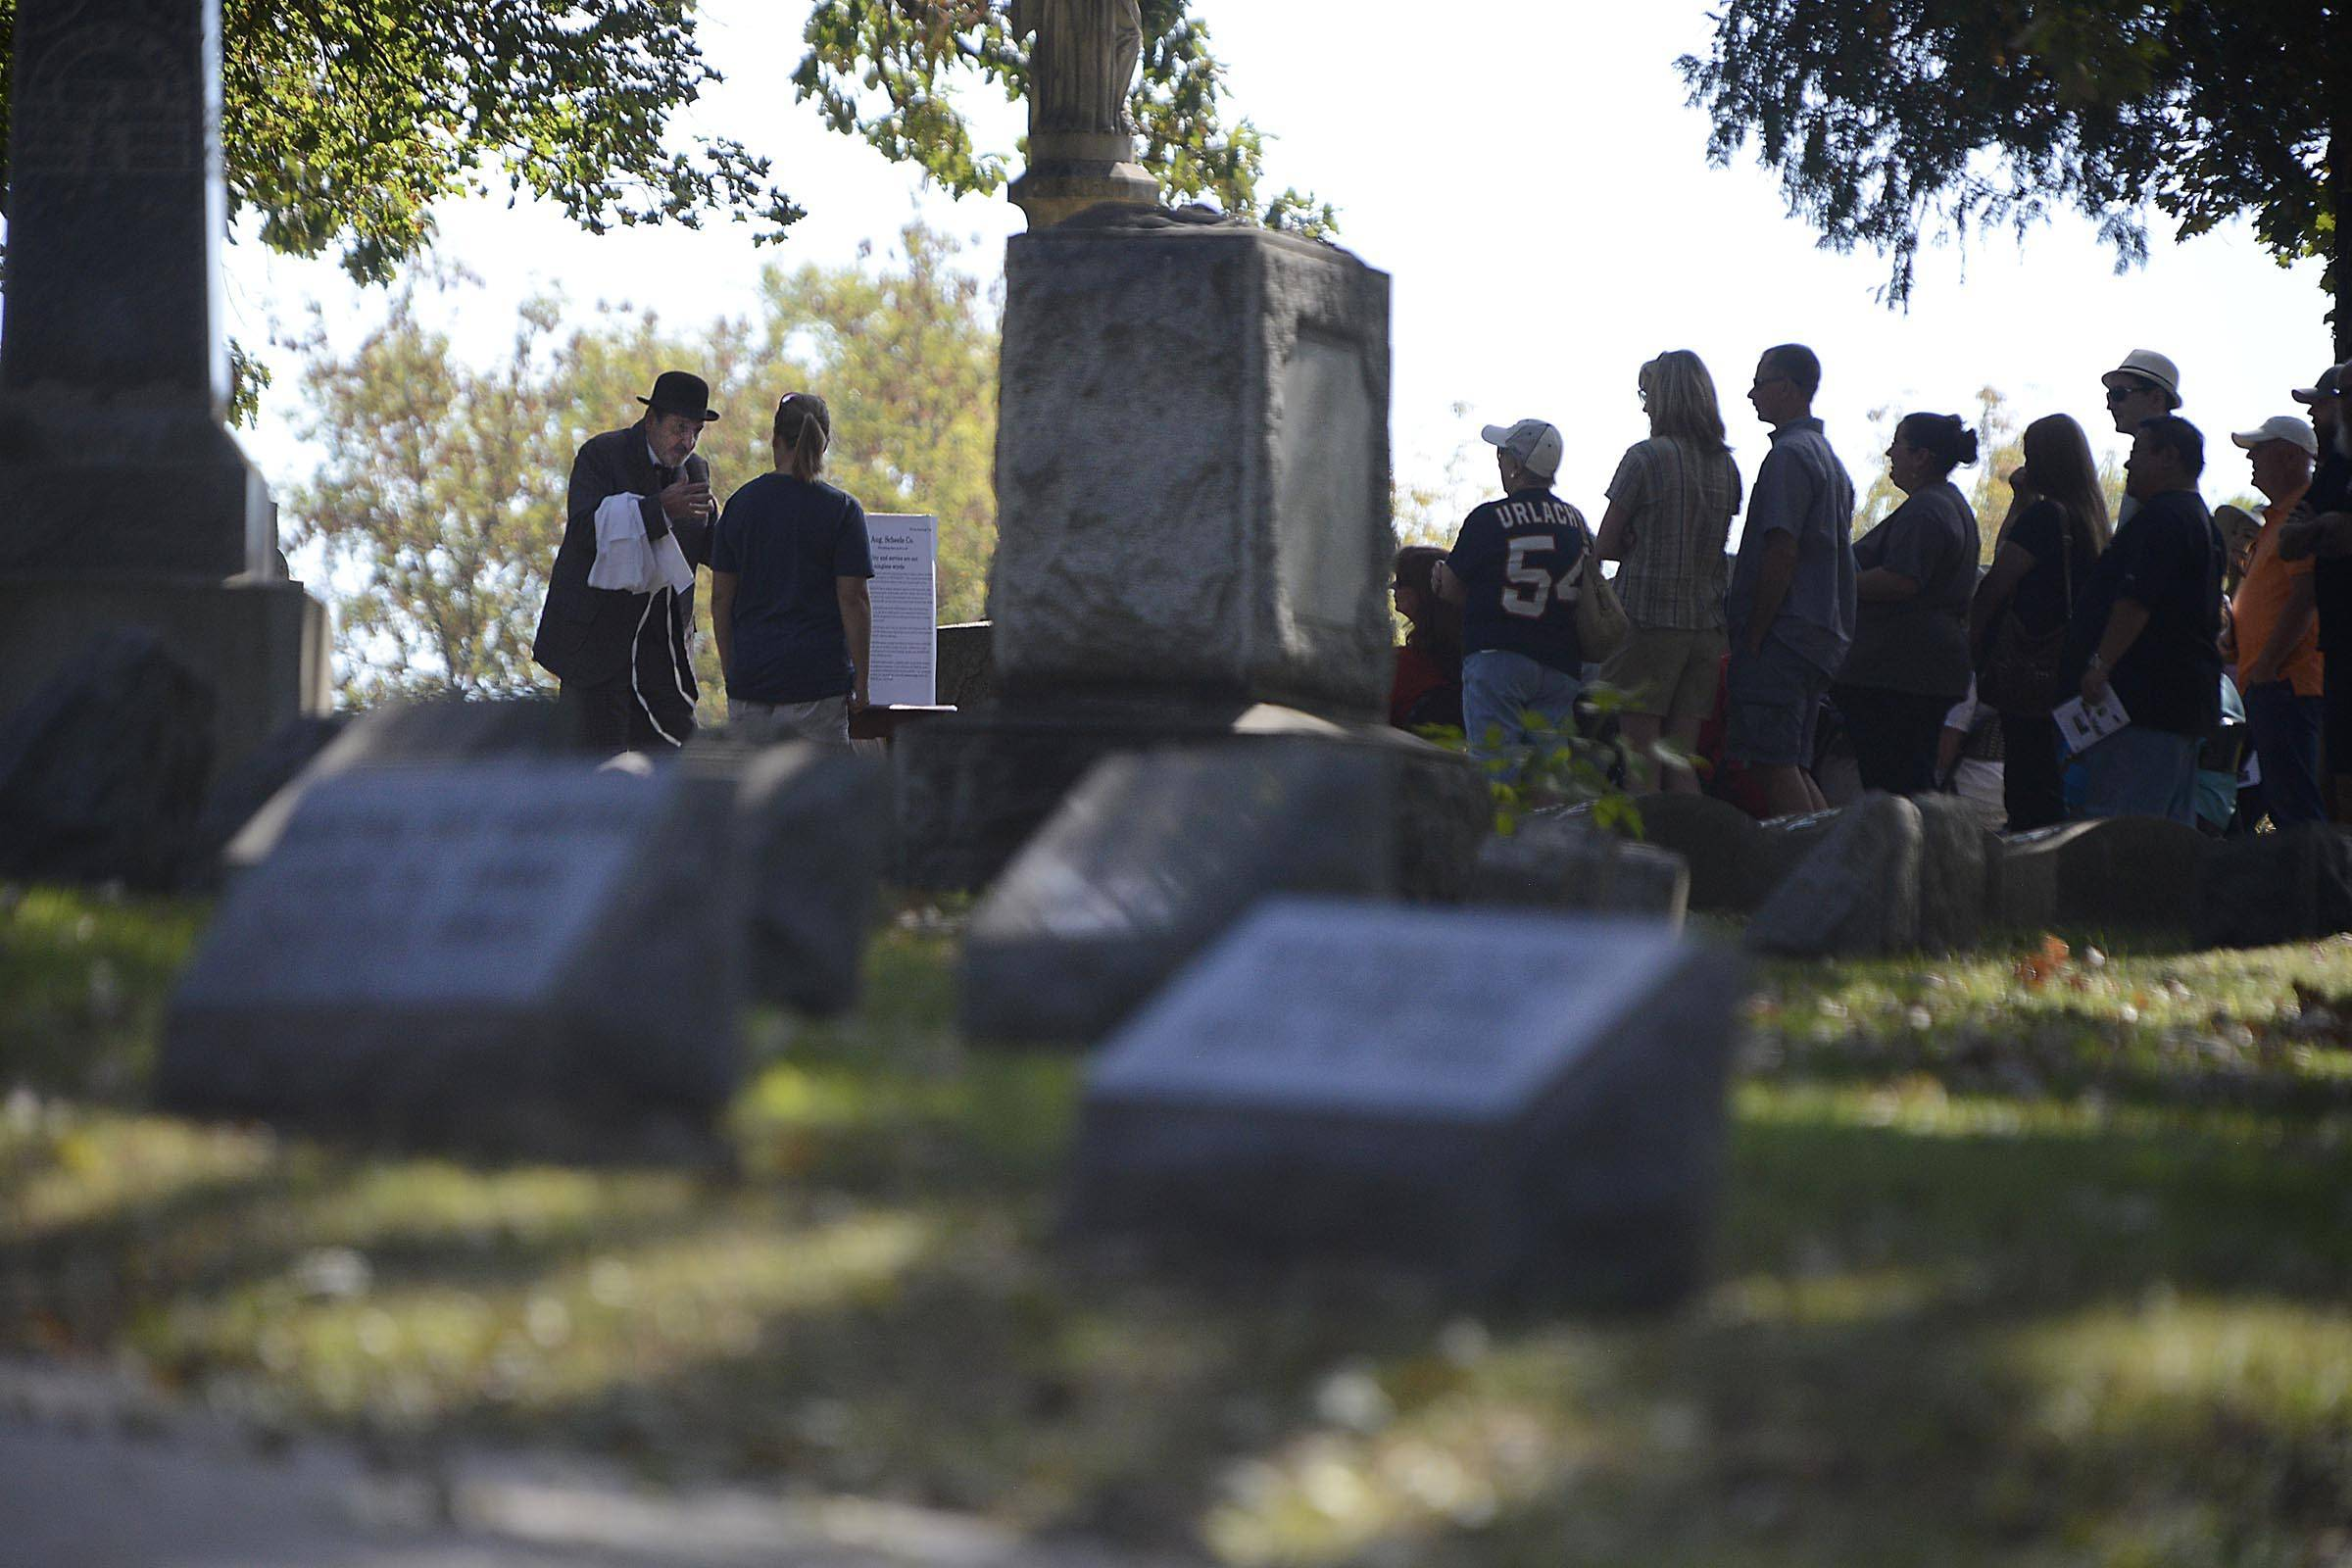 The 30th annual Elgin Cemetery Walk will feature actors portraying long-dead Elgin notables and sharing their life stories. It takes place Sunday at Bluff City Cemetery.